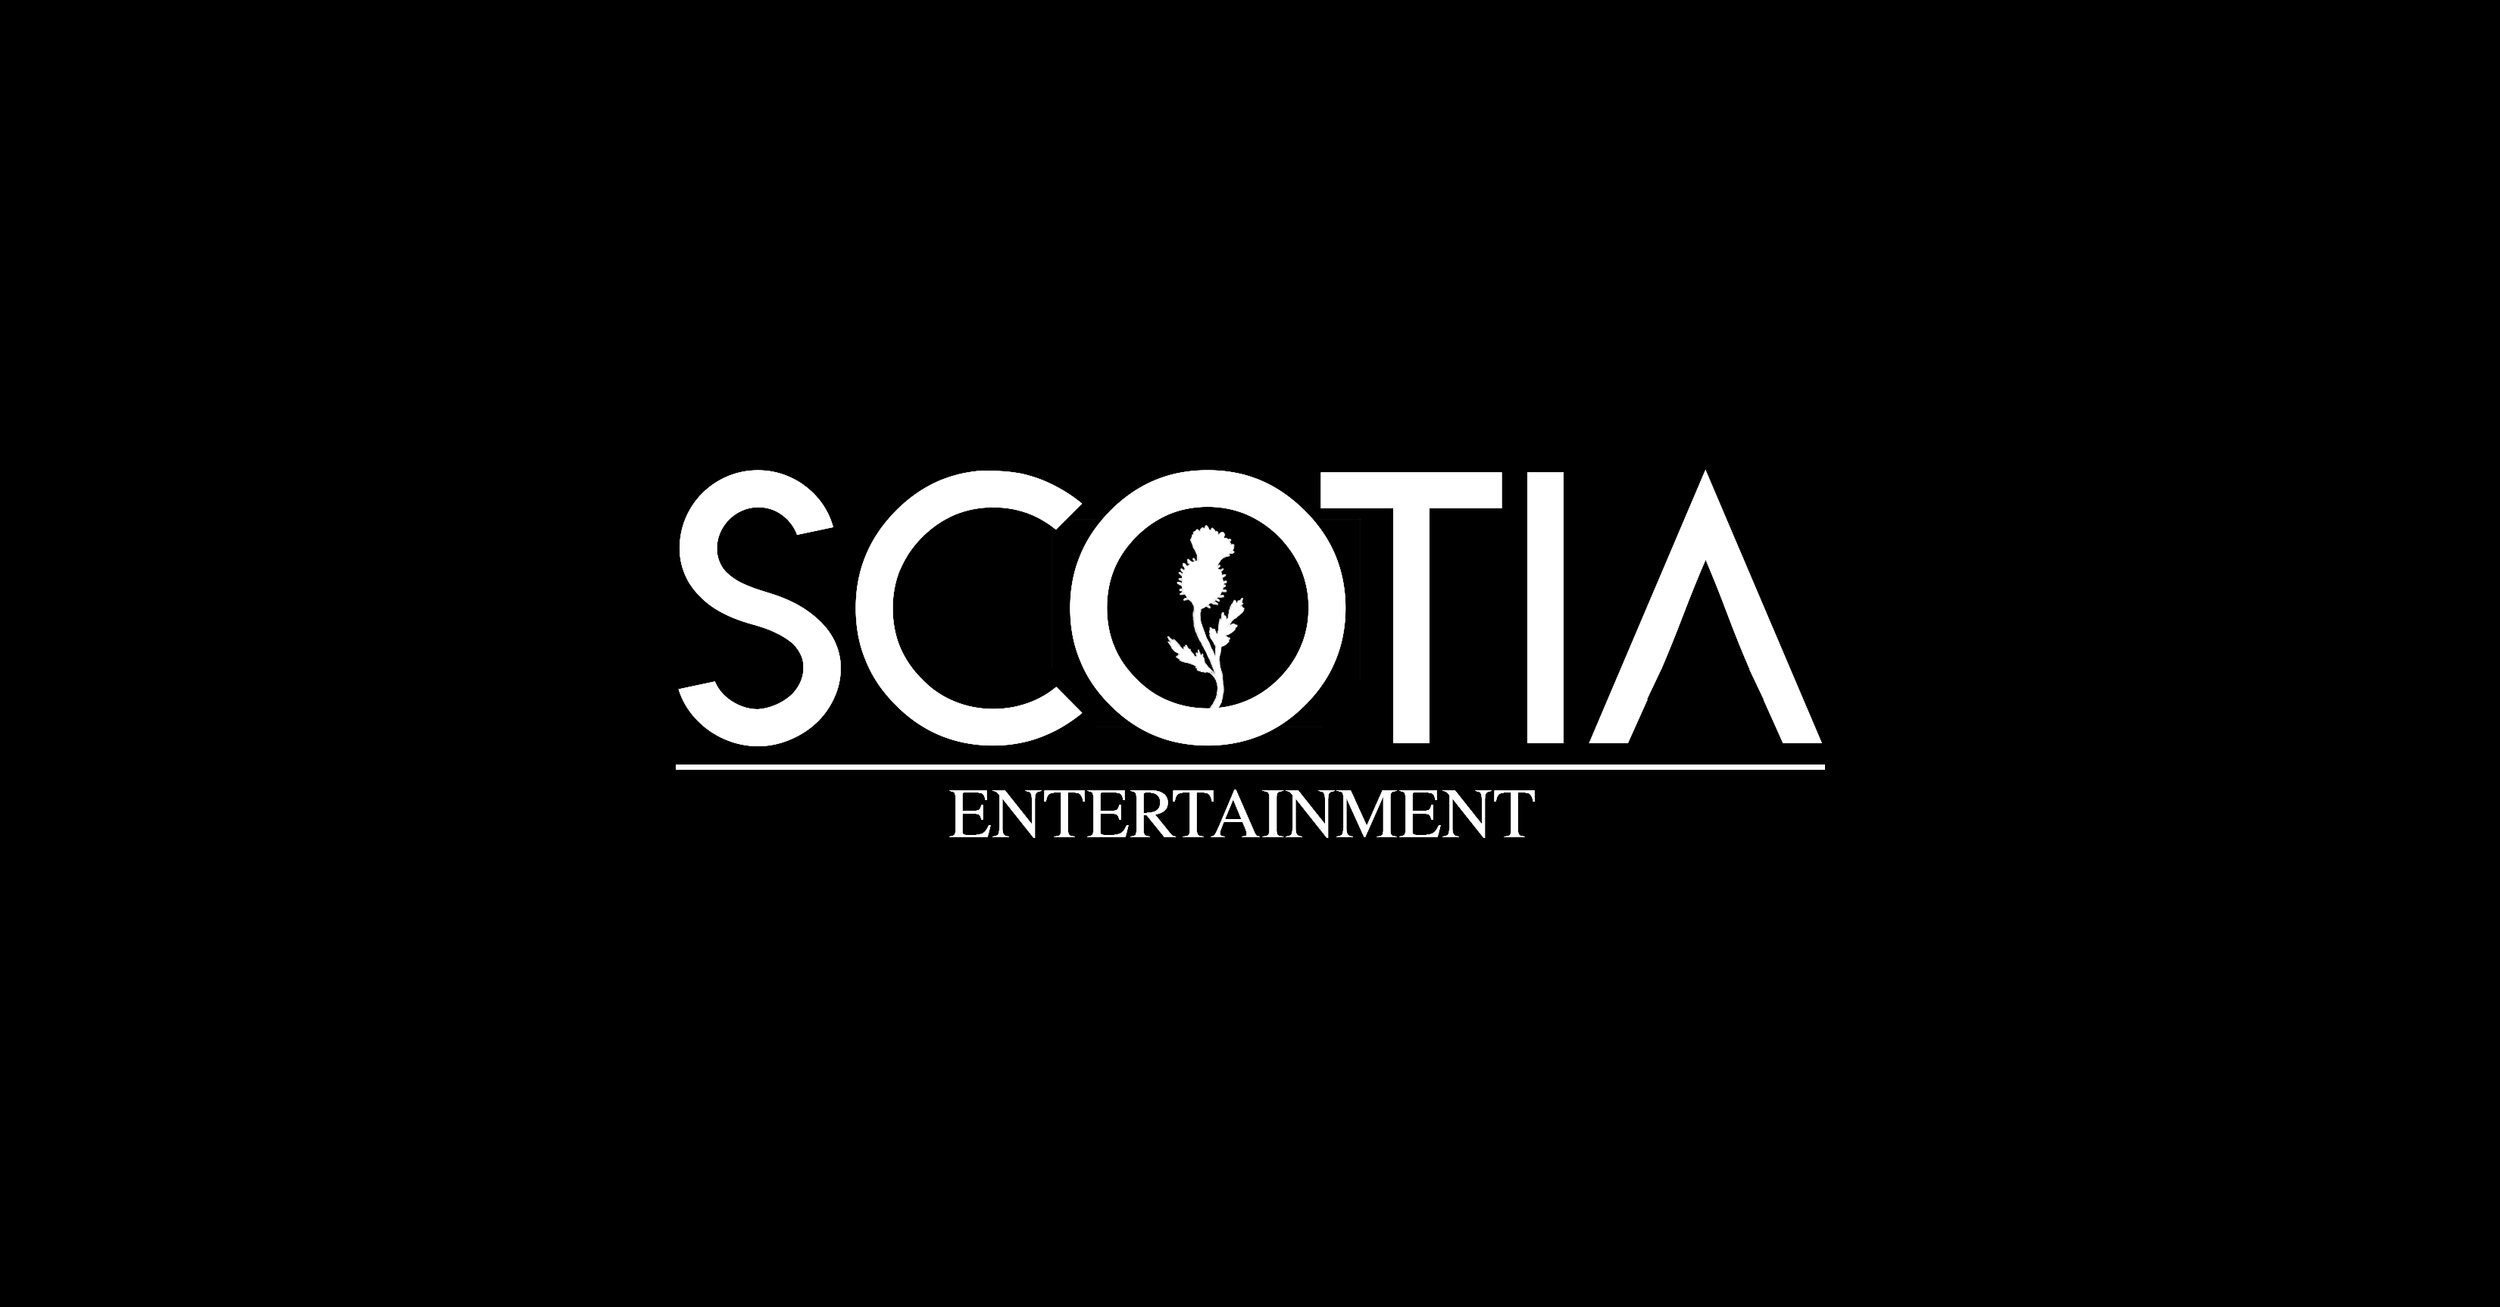 scotia_ent_thistle-solid_blackbg_whiteText.jpg